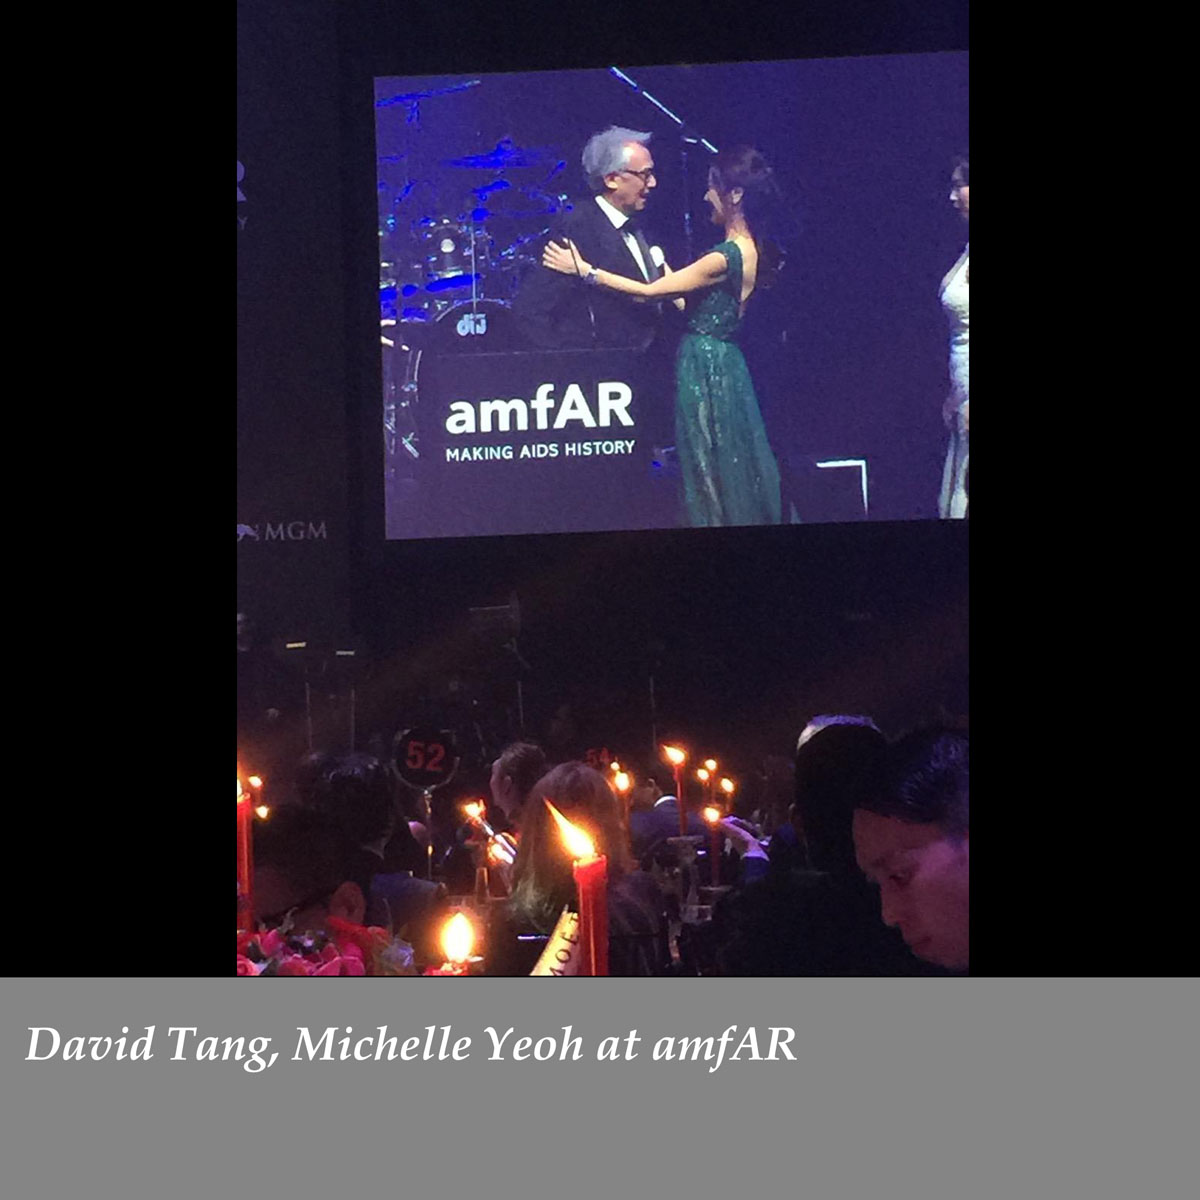 David-Tang-Michelle-Yeoh-at-amfAR